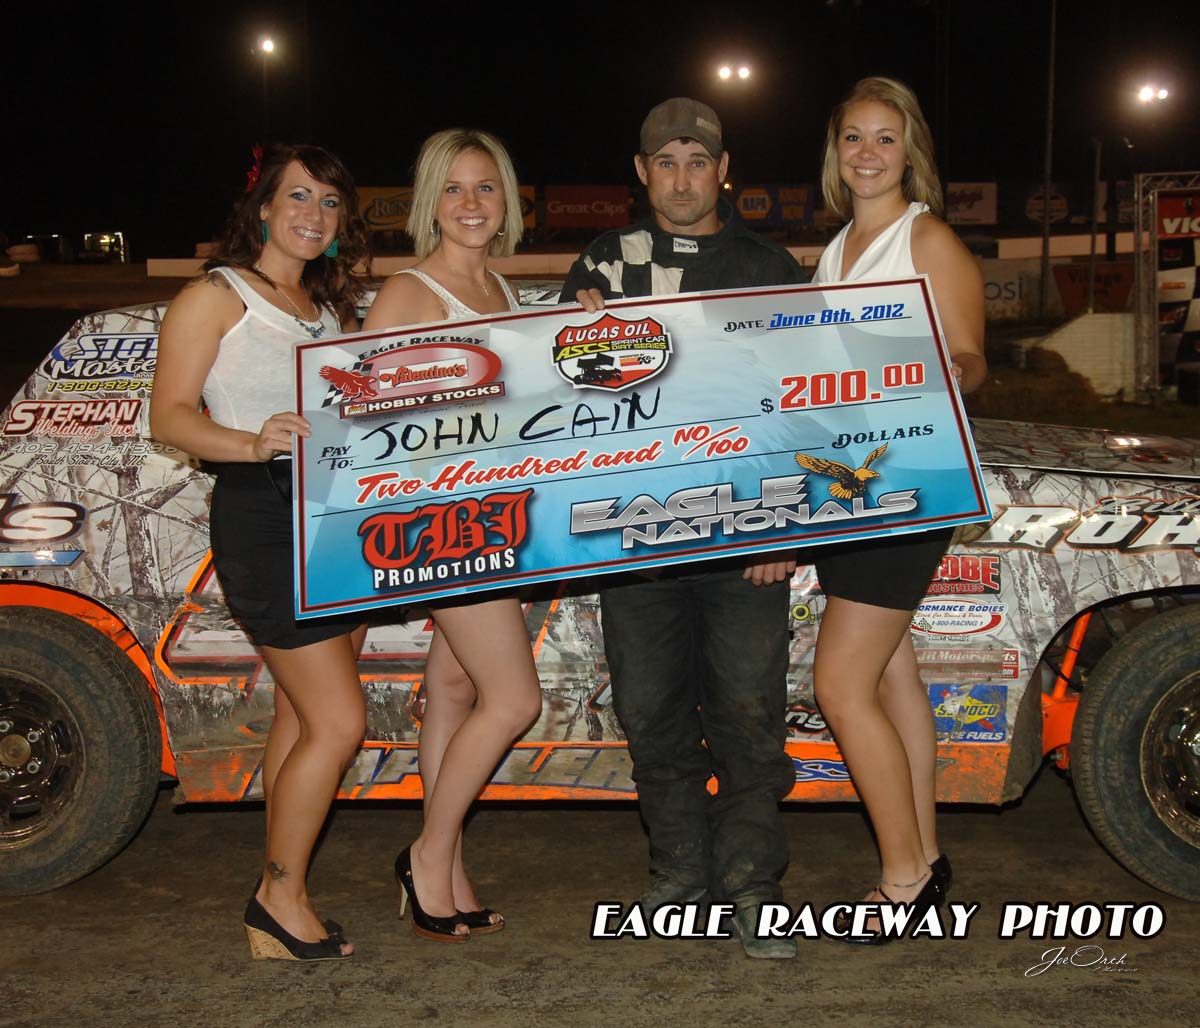 eagle-6-8-12-649-john-cain-with-miss-nebraska-cup-deanne-kathol-and-finalist-elle-patocka-and-lindsey-flodman